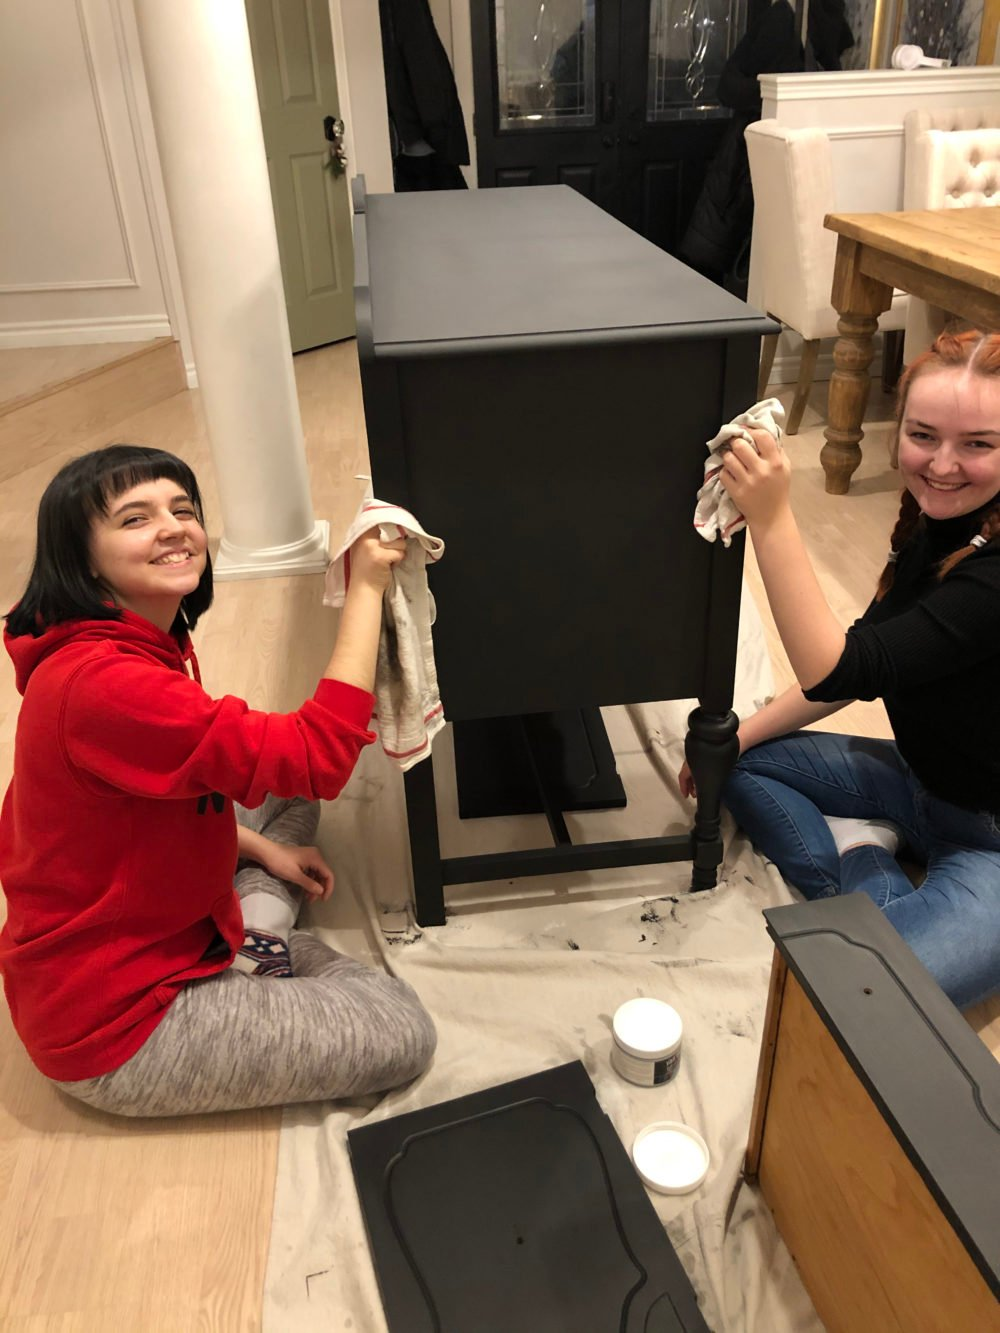 girls waxing over black paint with clear wax and old rags